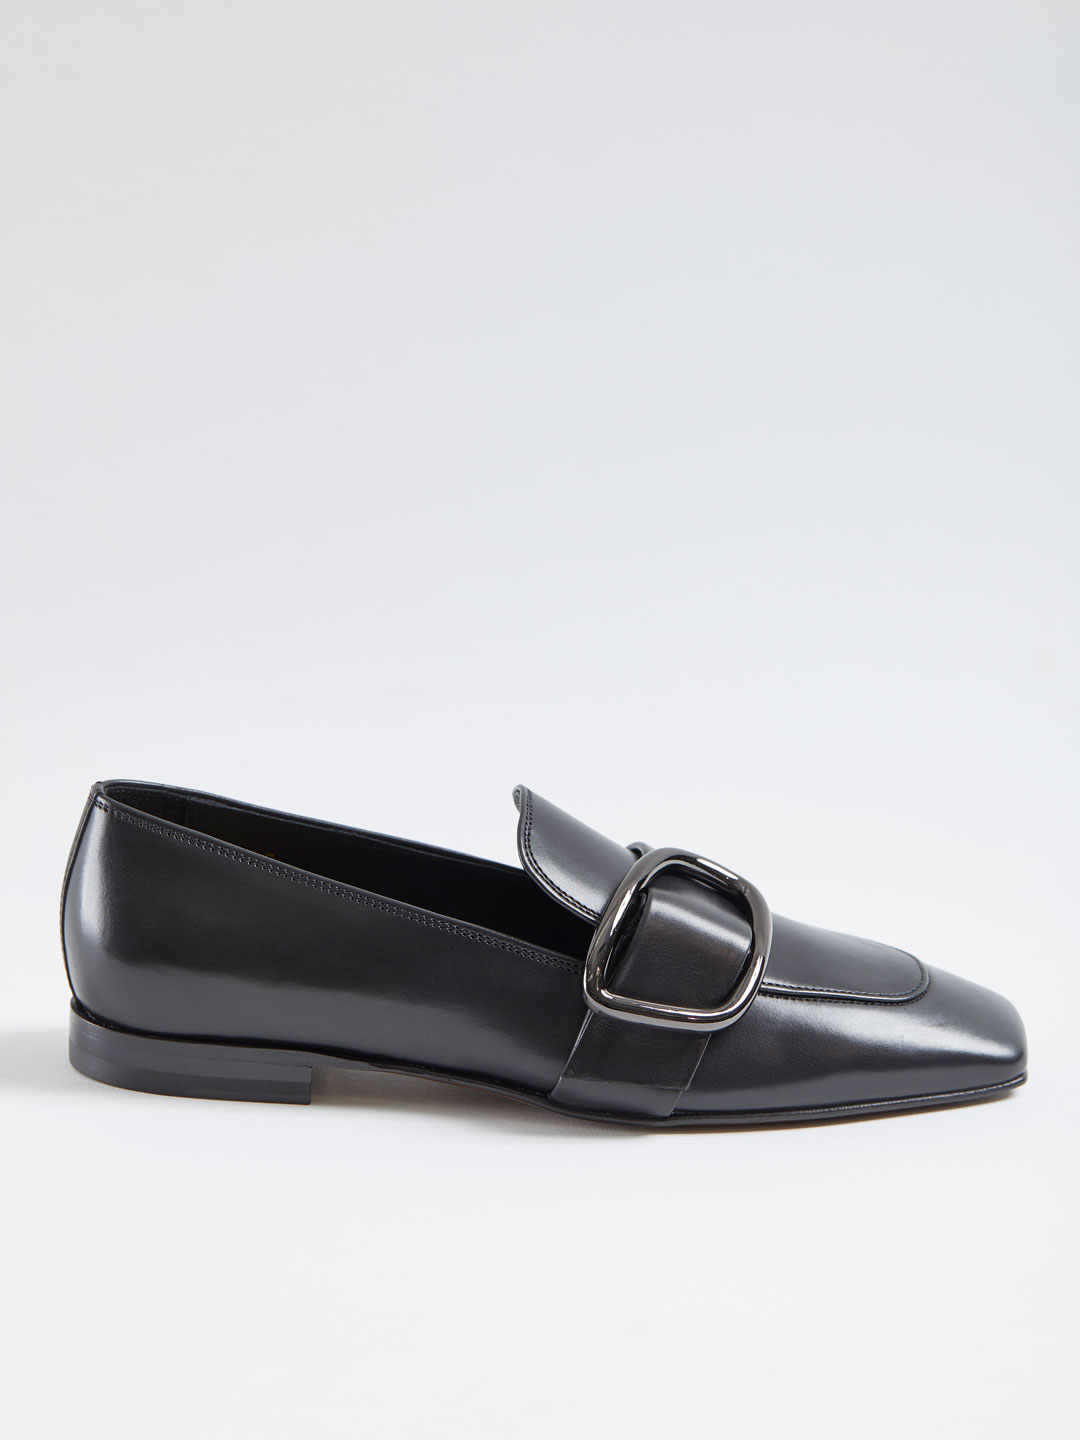 Charmer Belted Loafer - Black